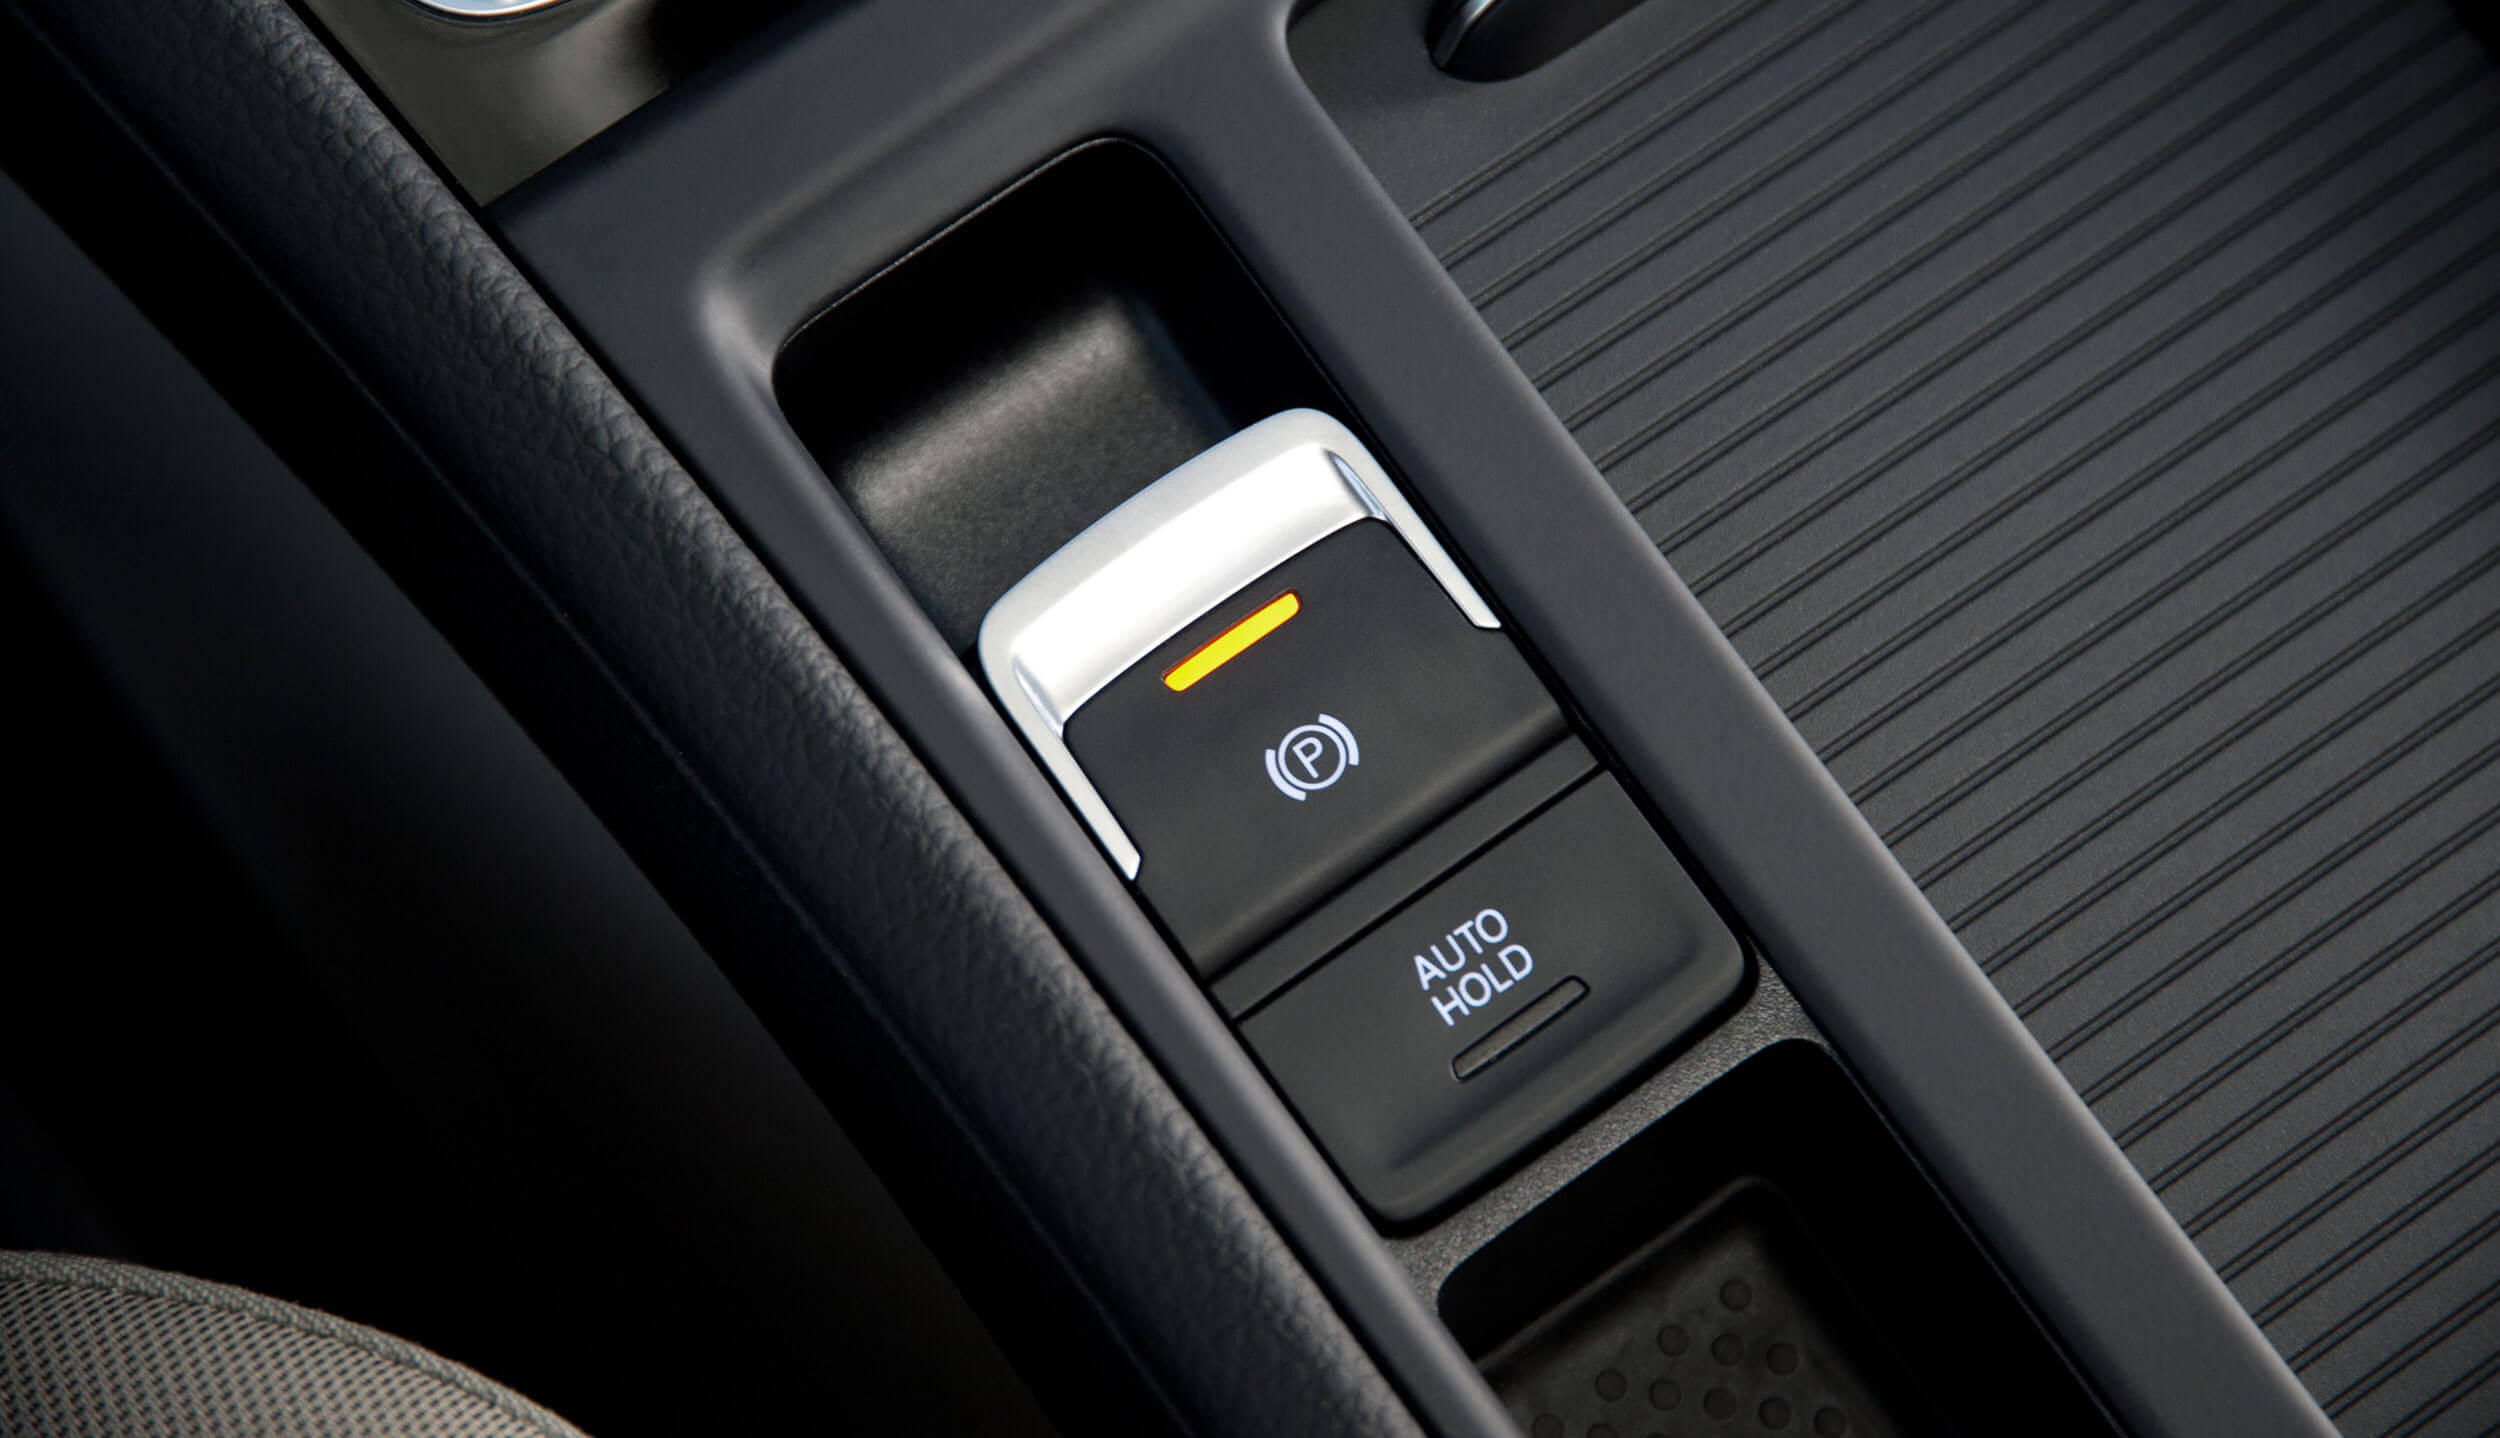 Electric park brake in the center console in a Volkswagen Touran